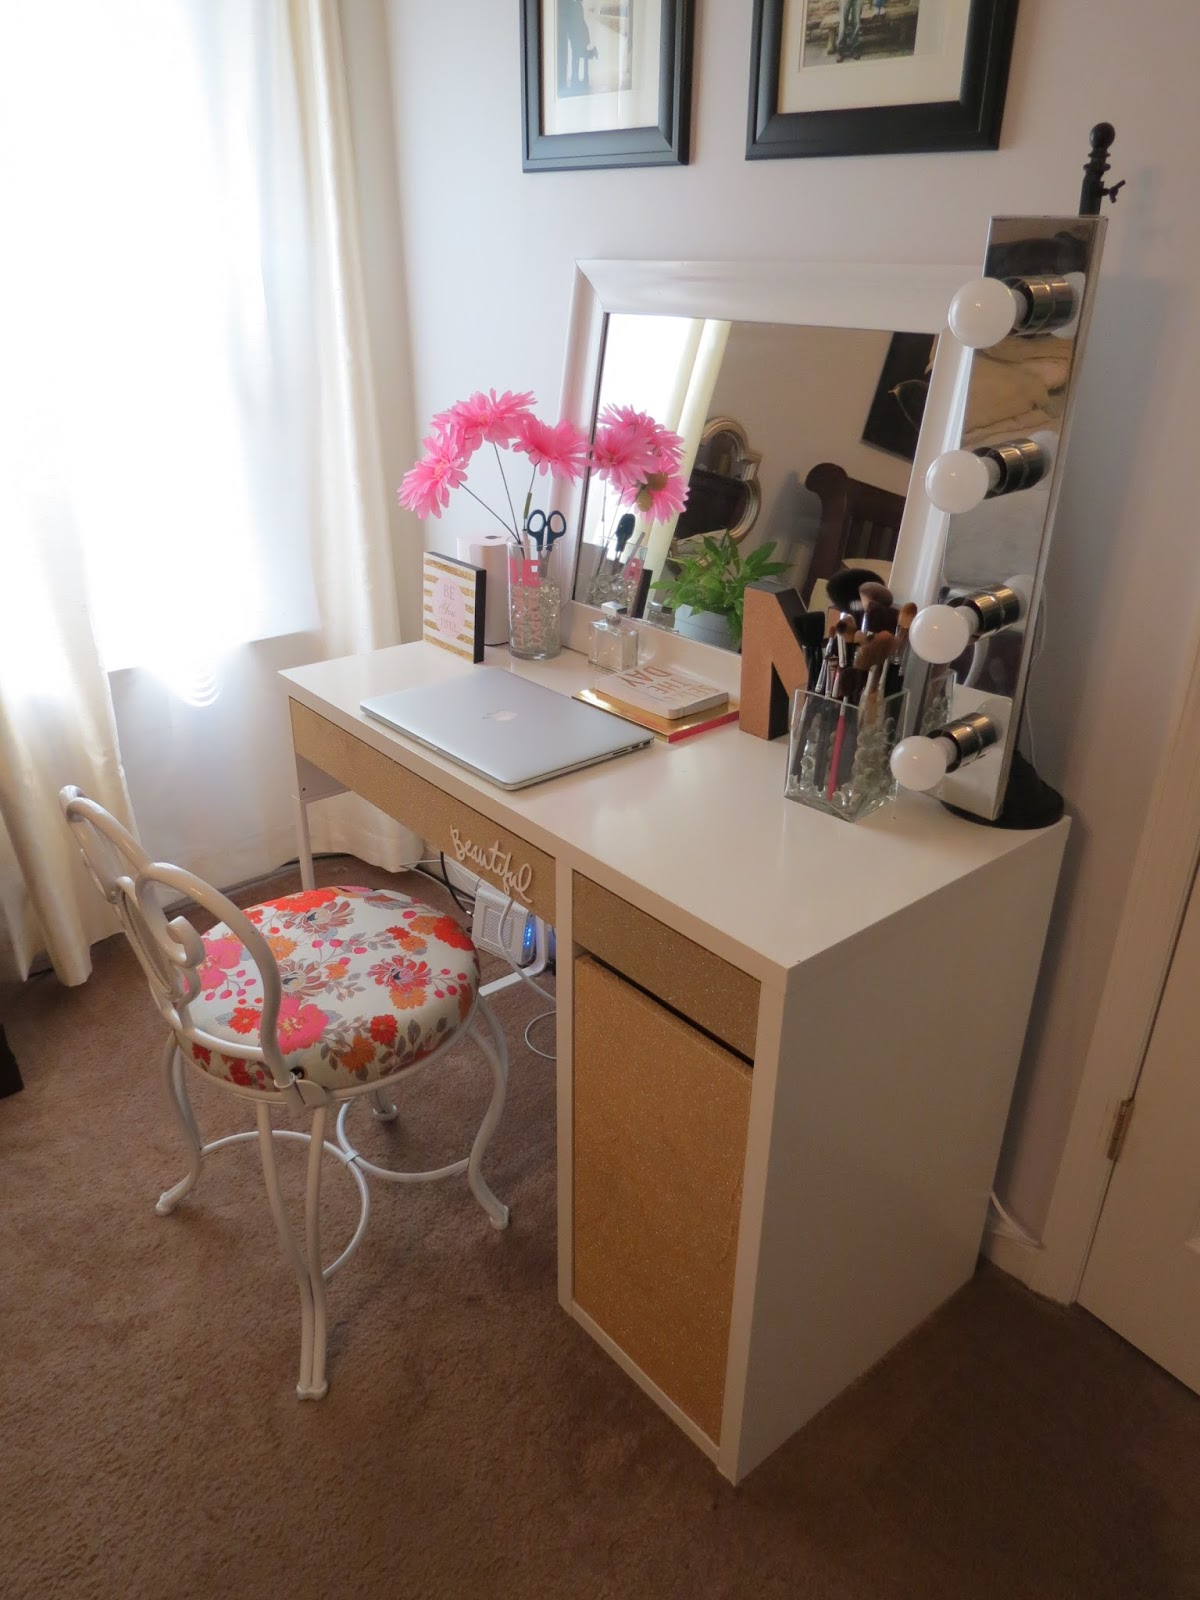 My $20 Ikea Desk Makeup Vanity